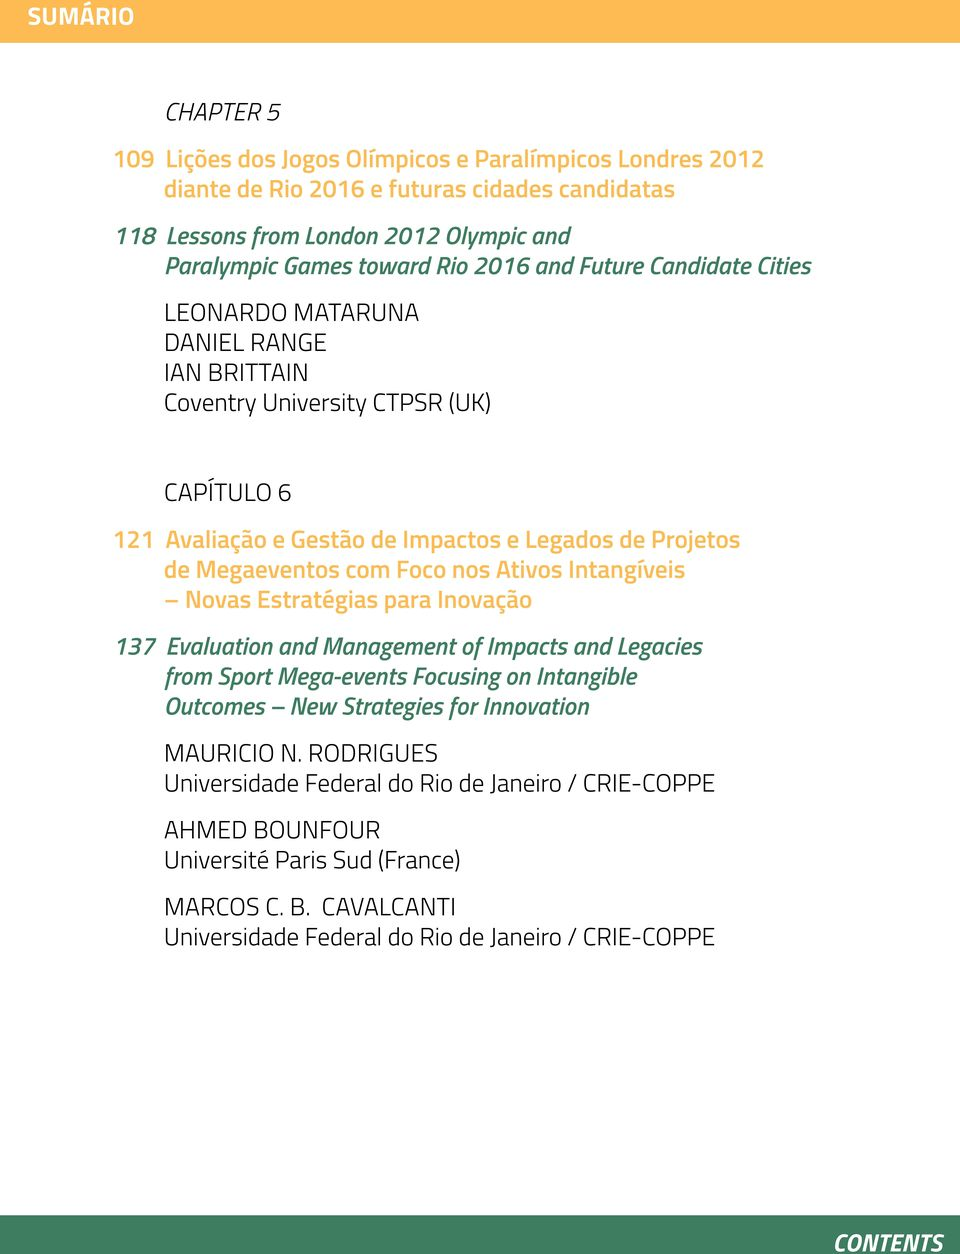 Foco nos Ativos Intangíveis Novas Estratégias para Inovação 137 Evaluation and Management of Impacts and Legacies from Sport Mega-events Focusing on Intangible Outcomes New Strategies for